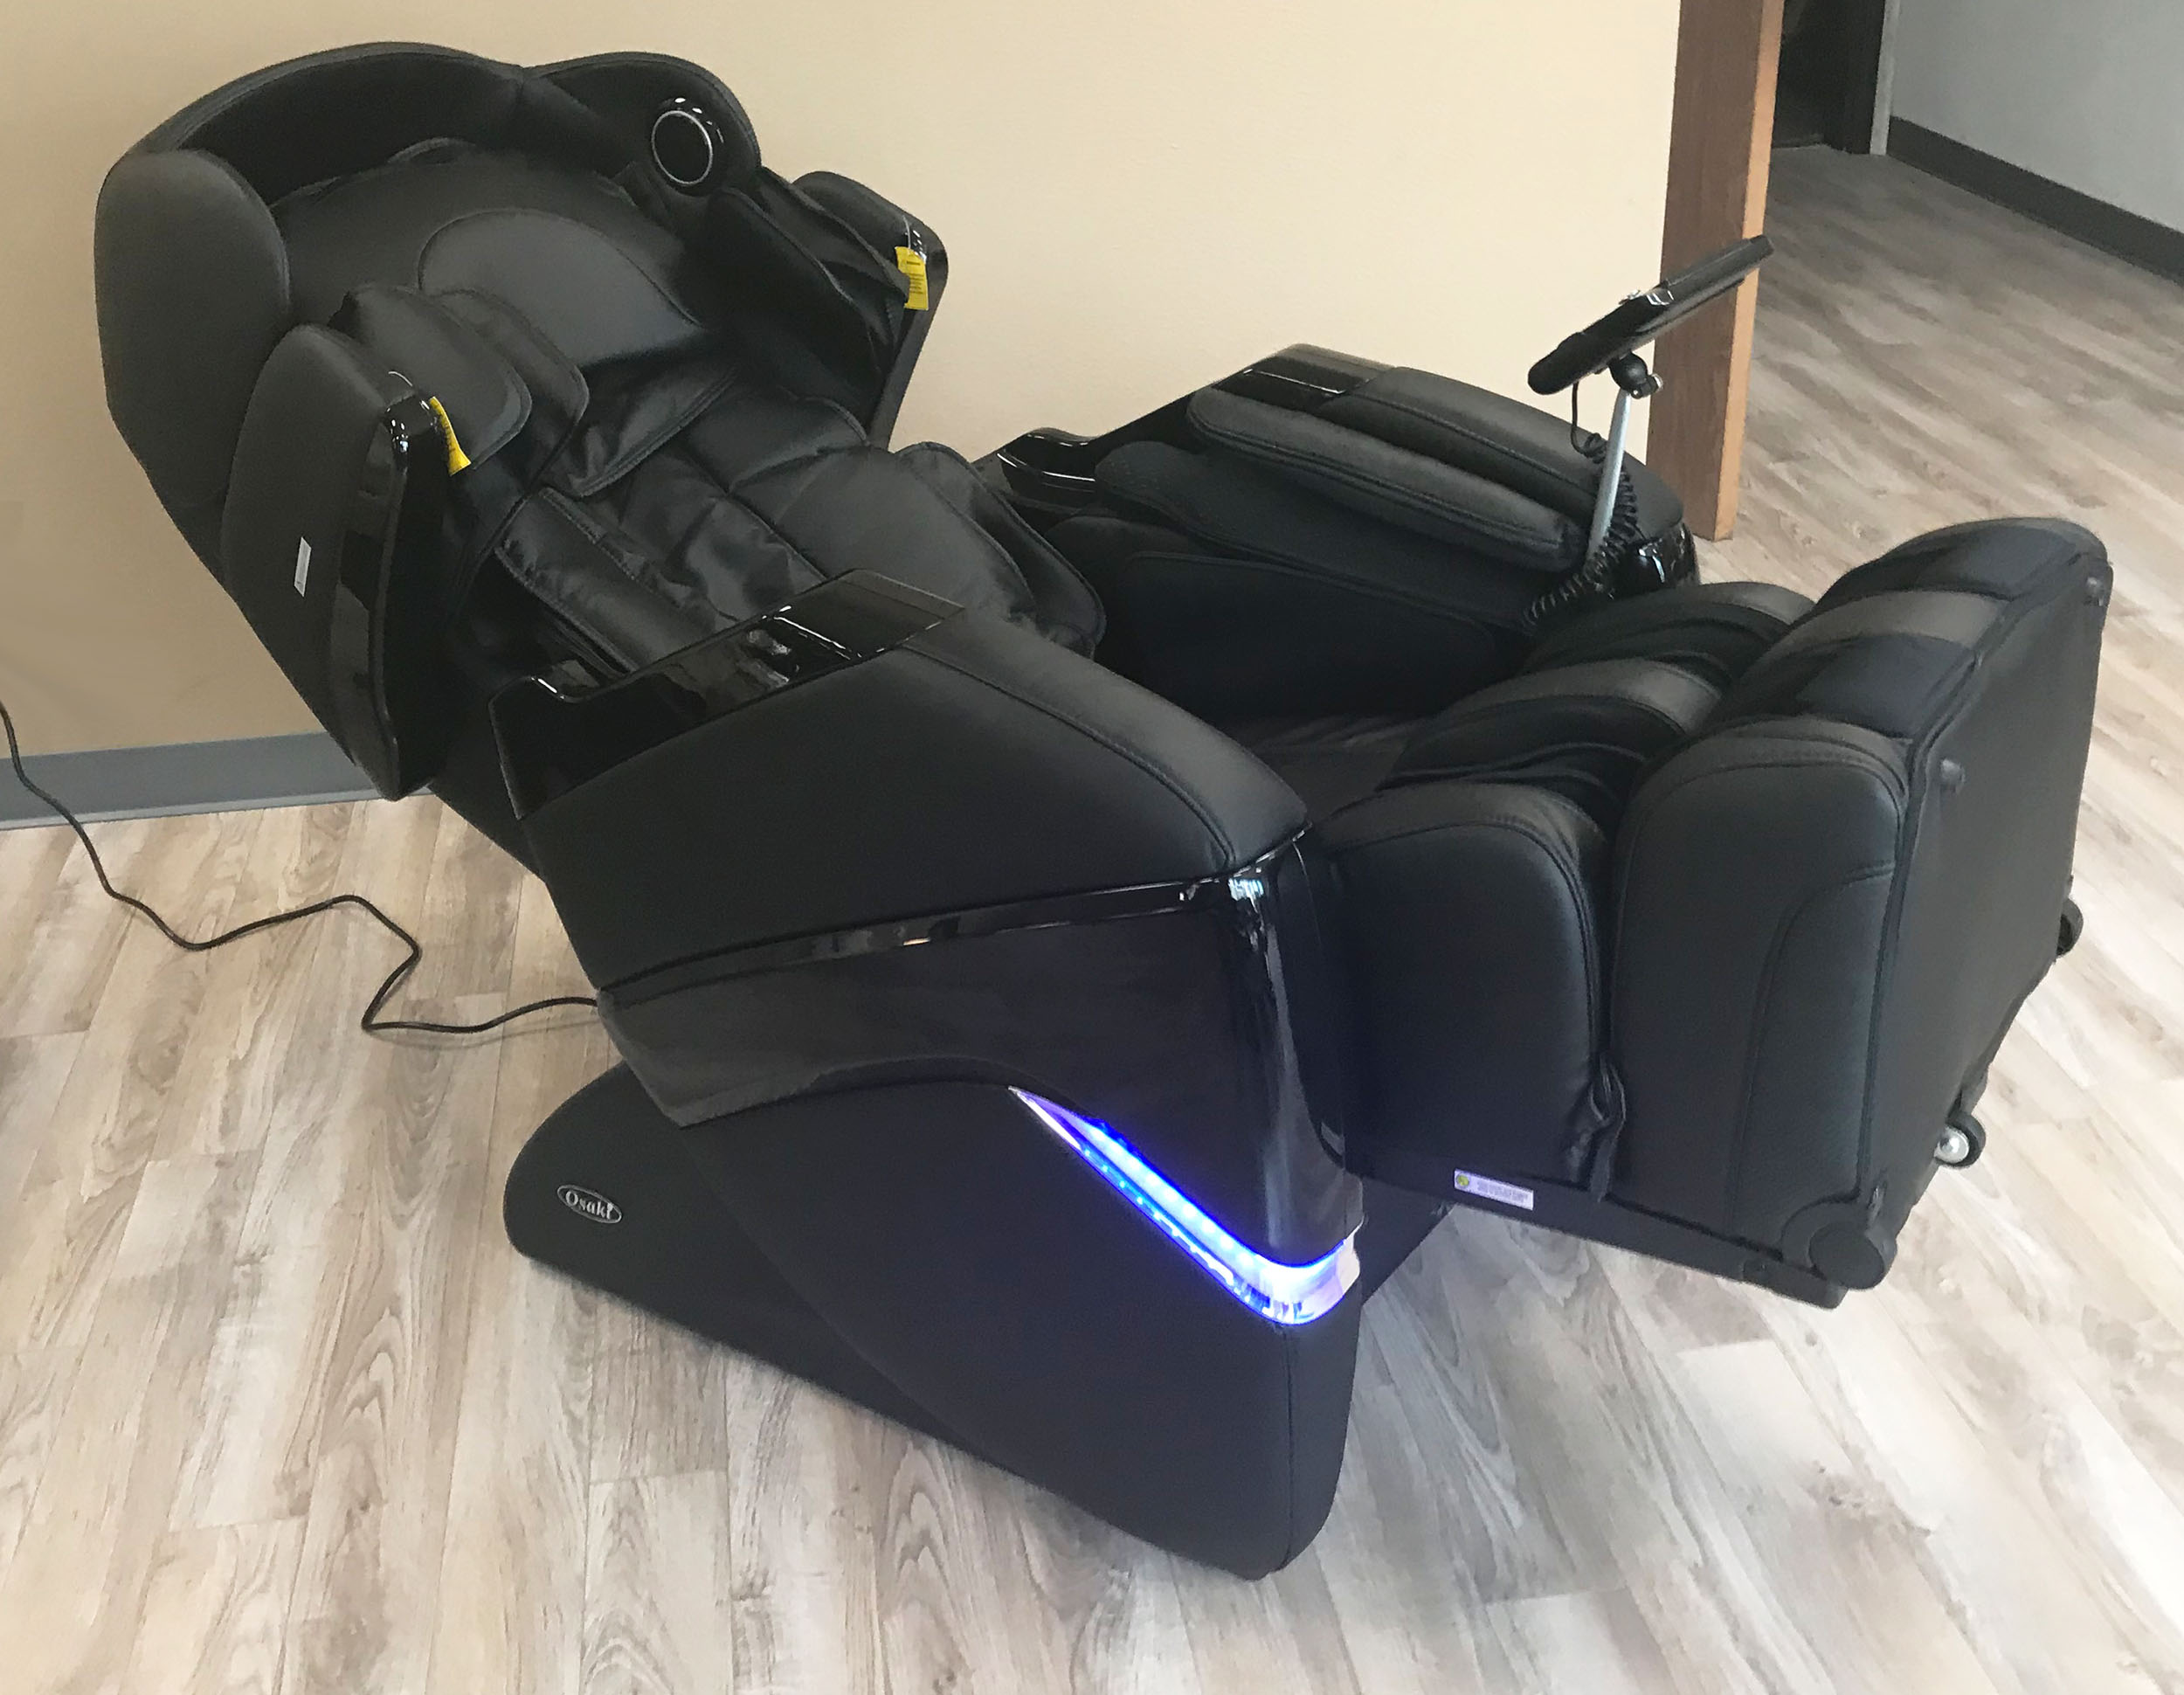 osaki os 3d pro cyber massage chair swivel rooms to go zero gravity recliner and